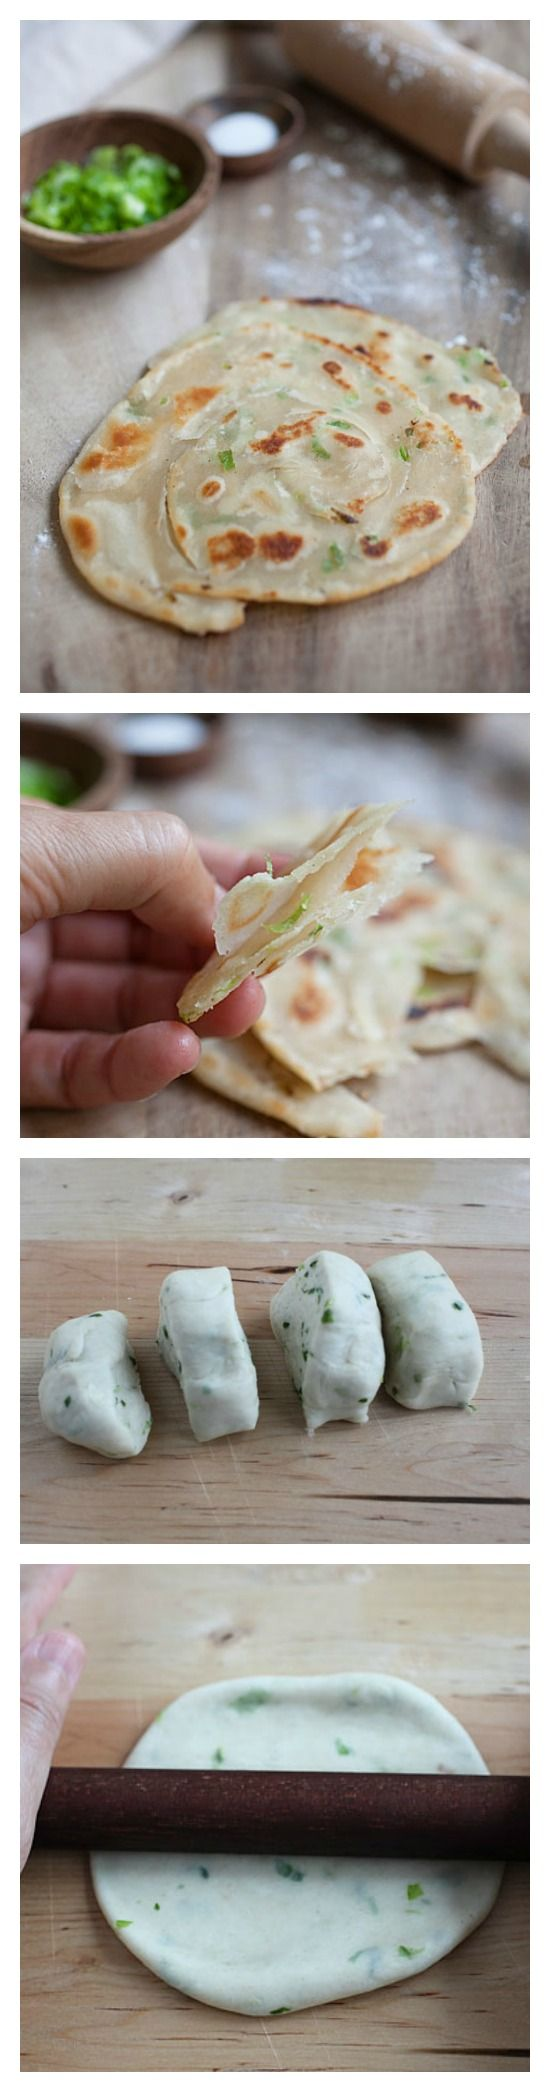 Scallion Pancake Recipe. 3 ingredients and so easy to make. Scallion pancake is healthy and delicious, make it today | http://rasamalaysia.com